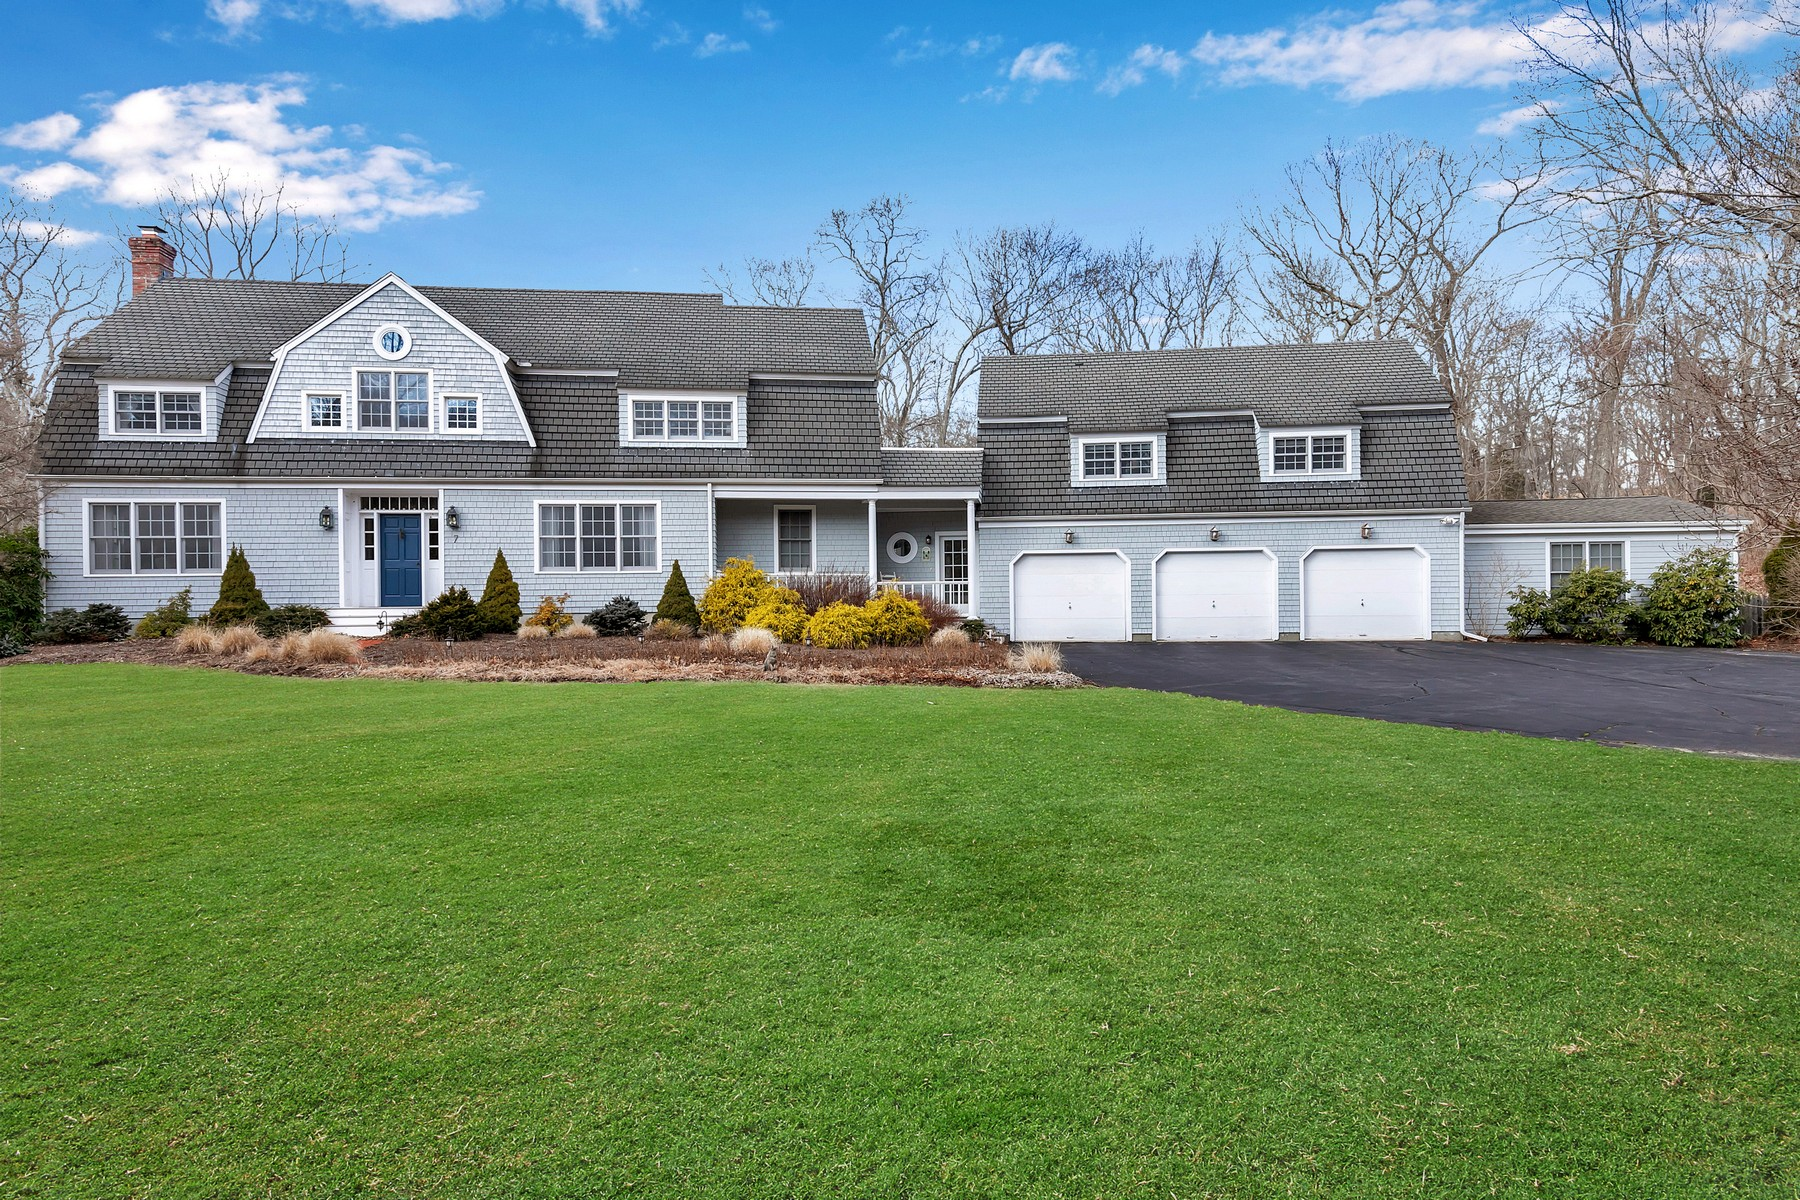 Single Family Homes for Sale at This Home Has so Much to Offer! 7 Watrous Point Rd Old Saybrook, Connecticut 06475 United States